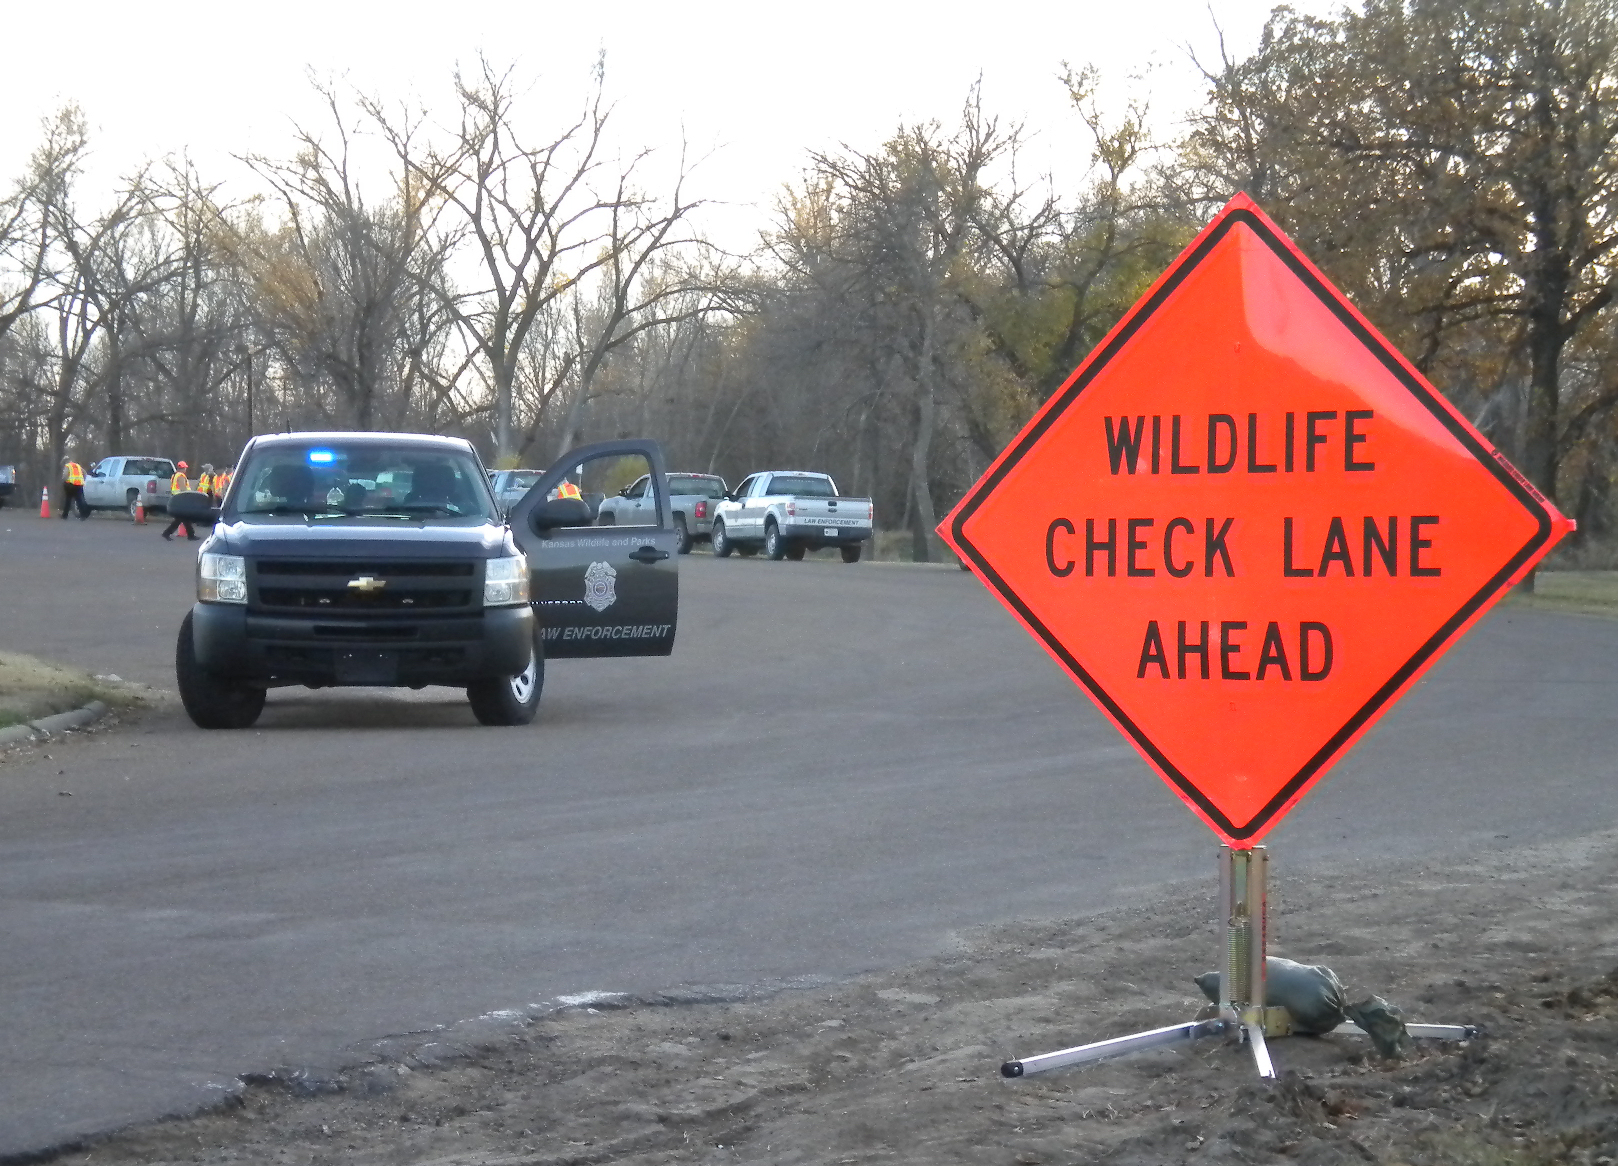 Officers Mobilizing For Wildlife Checkpoints